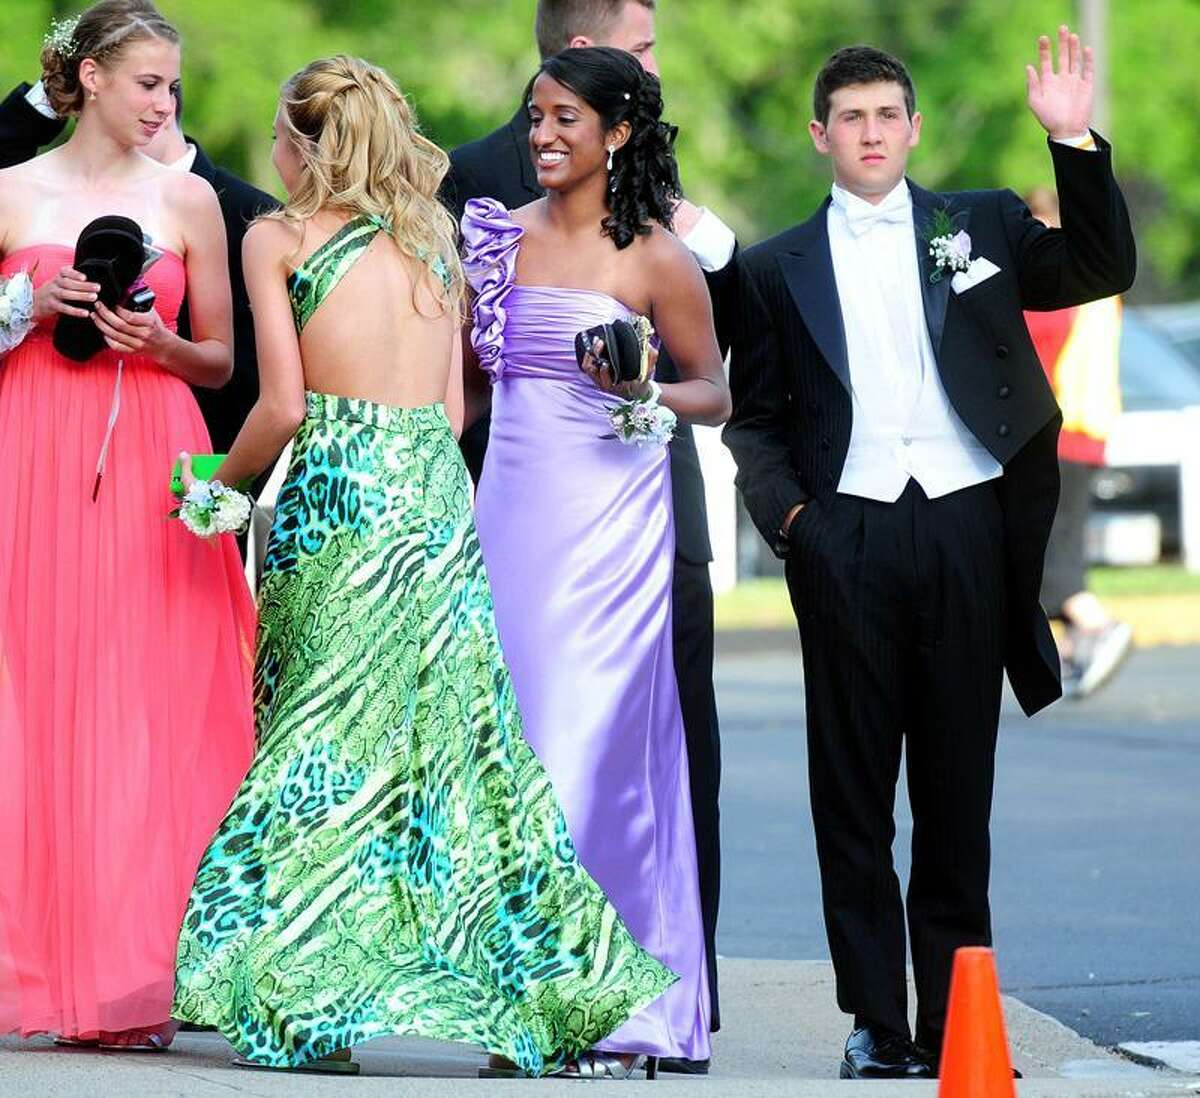 Sonali Rodrigues, center, and her date, James Tate ,right, arrive at the Shelton High School prom held at the Toyota Presents the Oakdale Theatre in Wallingford Saturday. Photo by Arnold Gold/New Haven Register